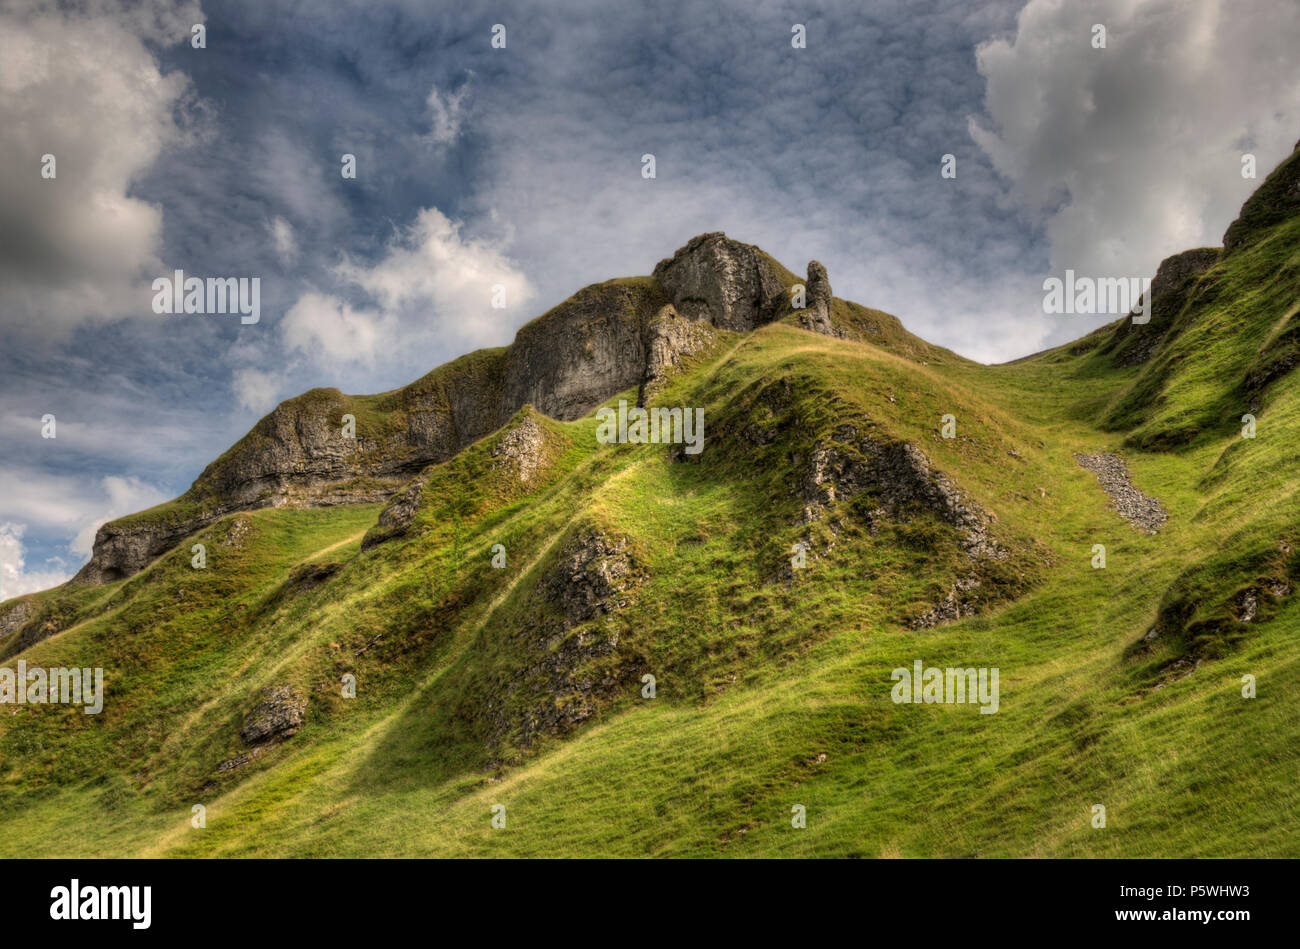 View of the mountains at Castleton, Derbyshire - Stock Image